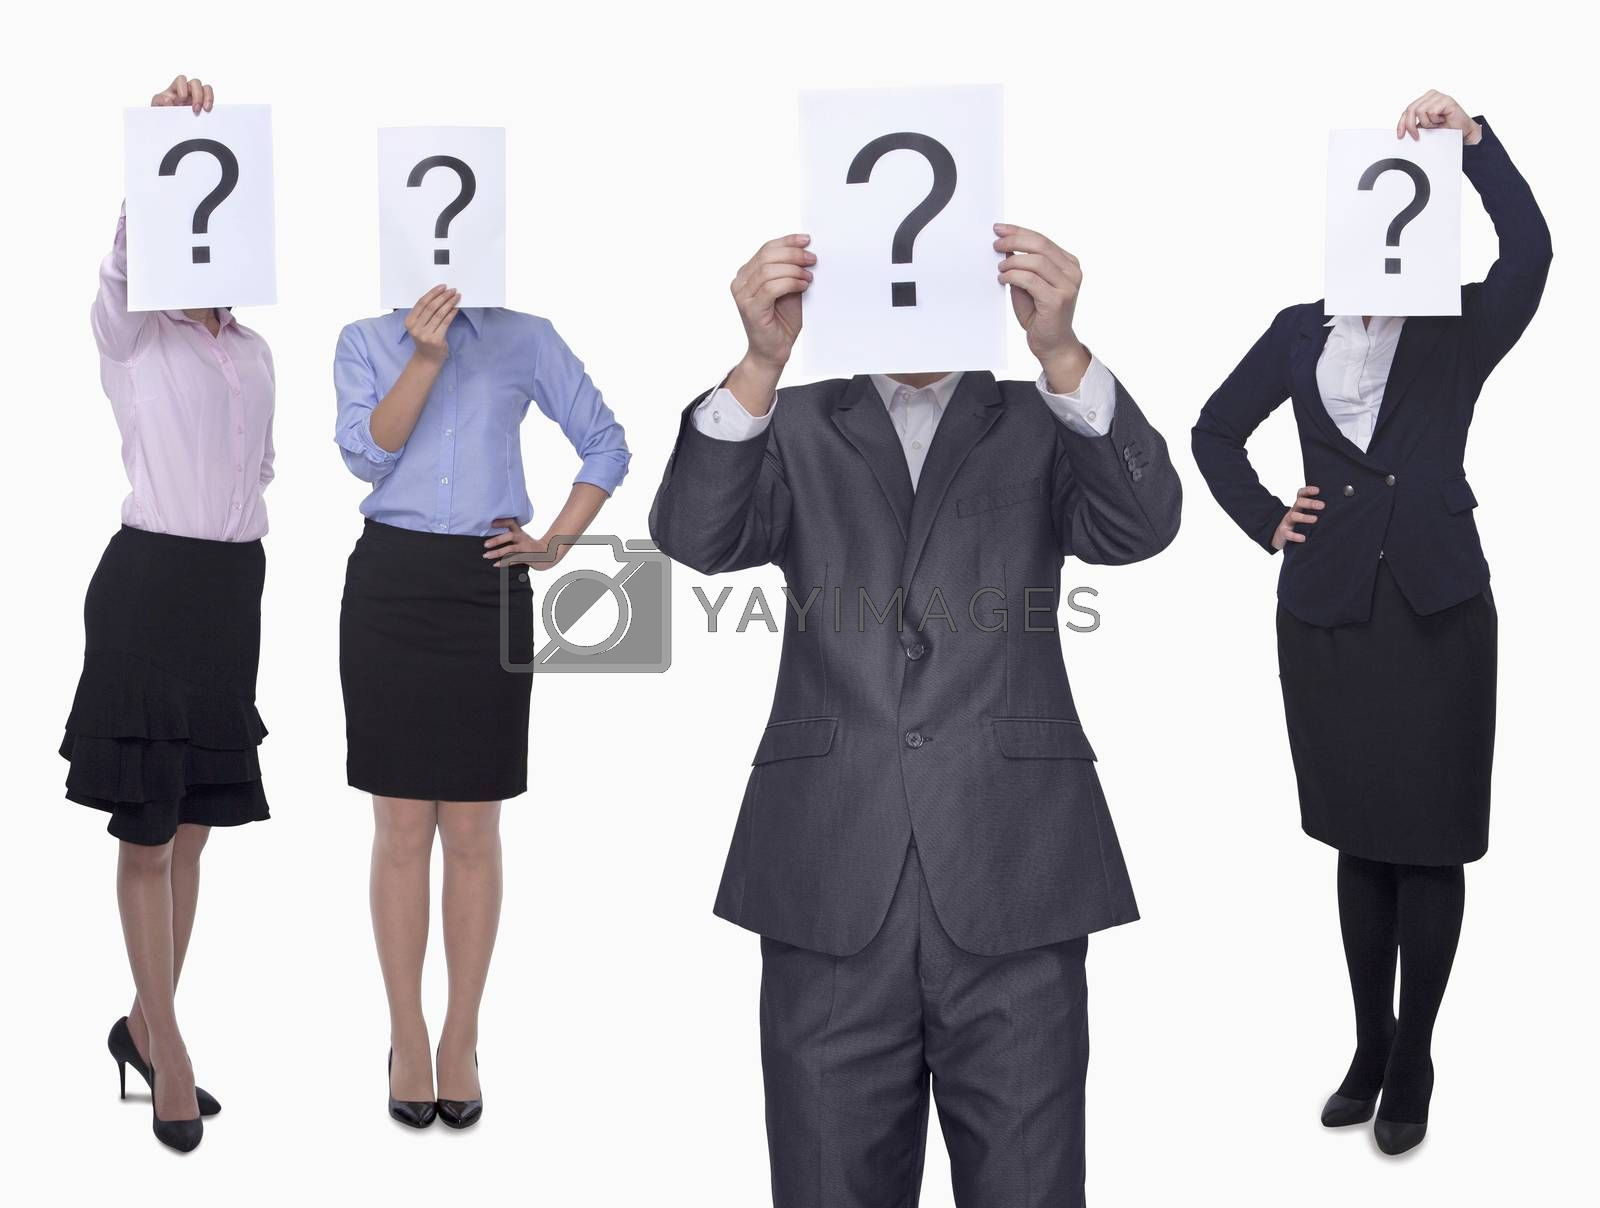 Four business people holding up paper with question mark, obscured face, studio shot by XiXinXing